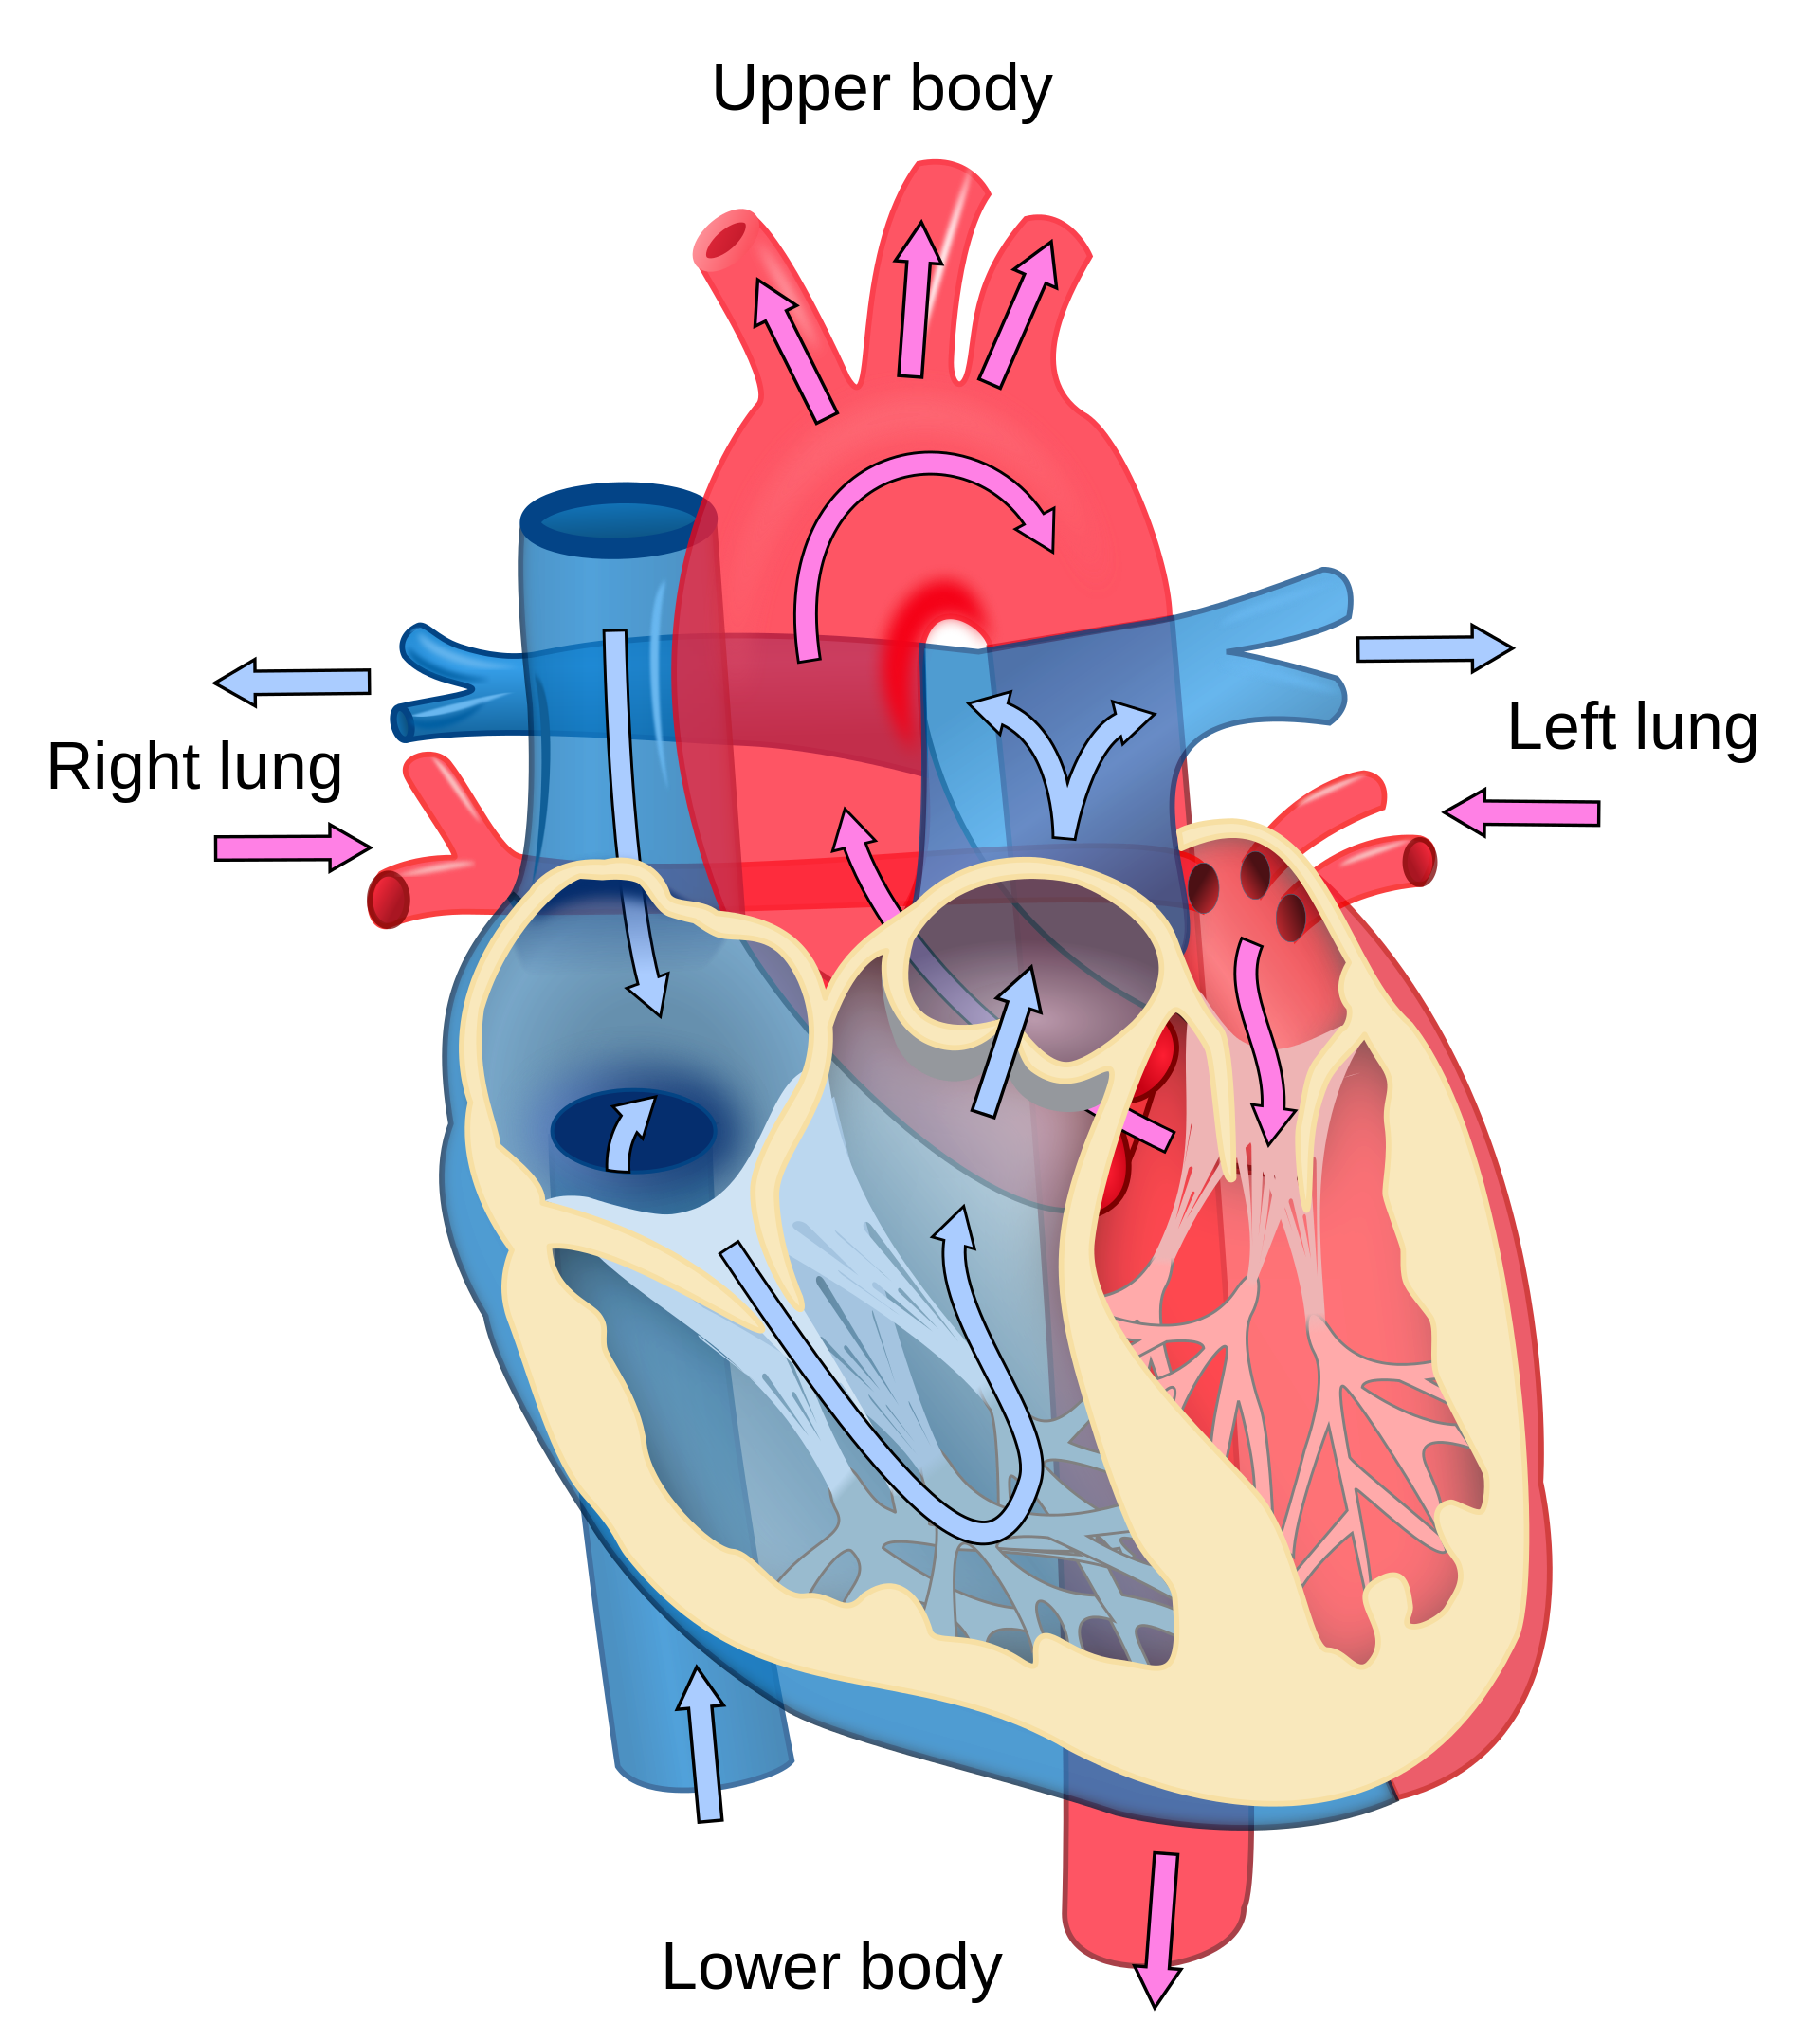 Human heart clipart labeled picture transparent library Heart Diagram Clipart at GetDrawings.com | Free for personal use ... picture transparent library